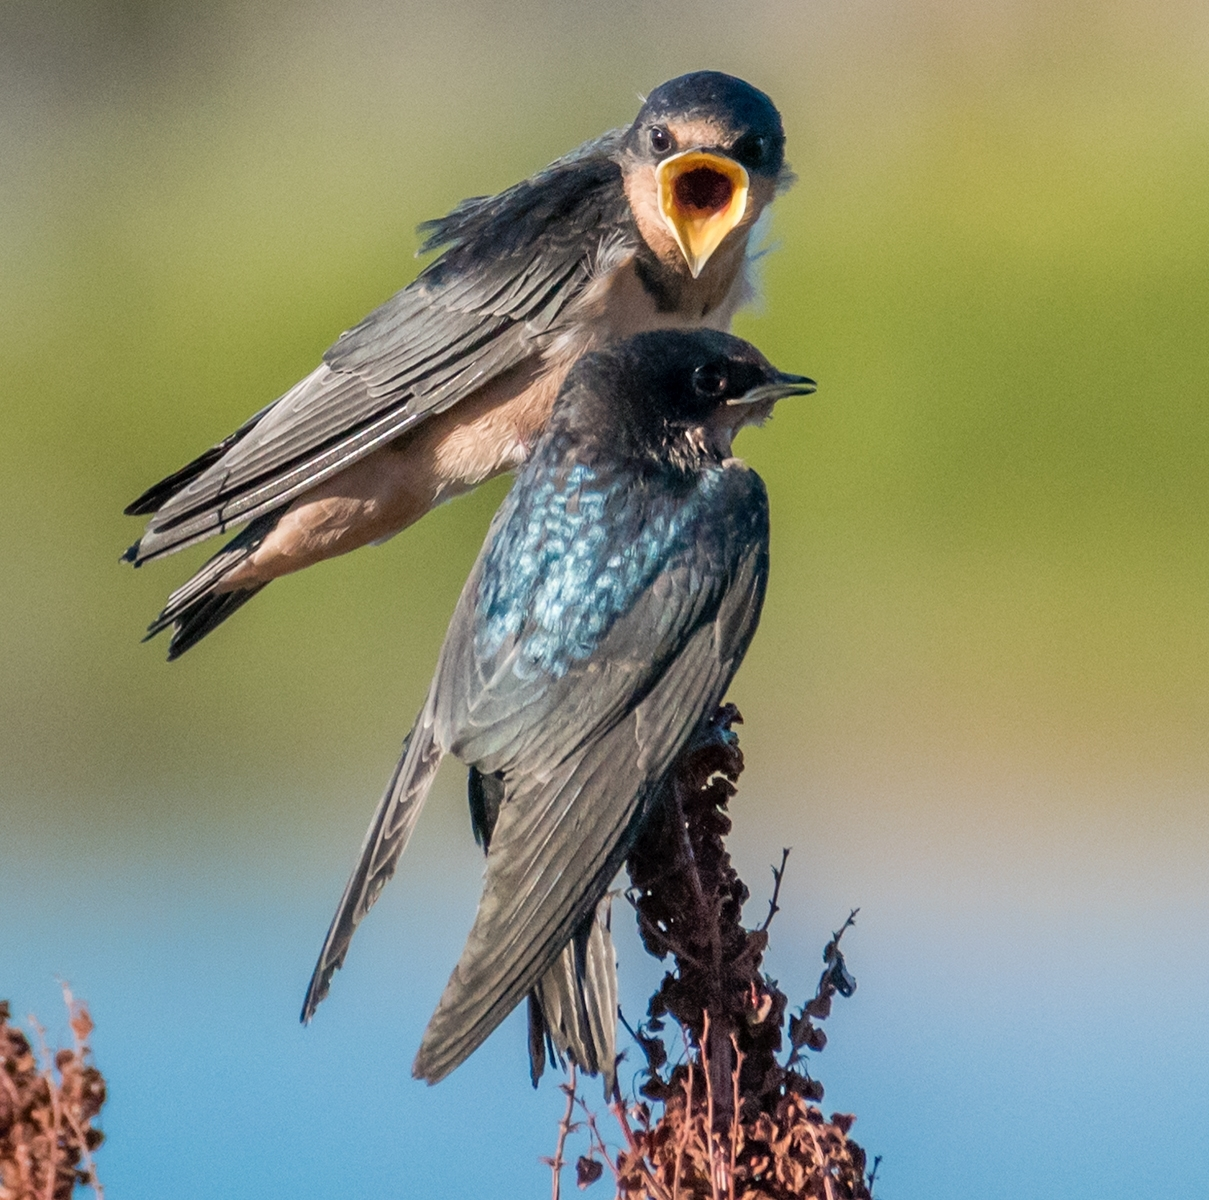 Barn-swallow-Hirundo-rustica-chick-being-fed-an-insect-4-12324523-With-a-wide-open-mouth-chick-indicates-it-is-still-hungry-NM-Place-by-Susie-Kelly-MR